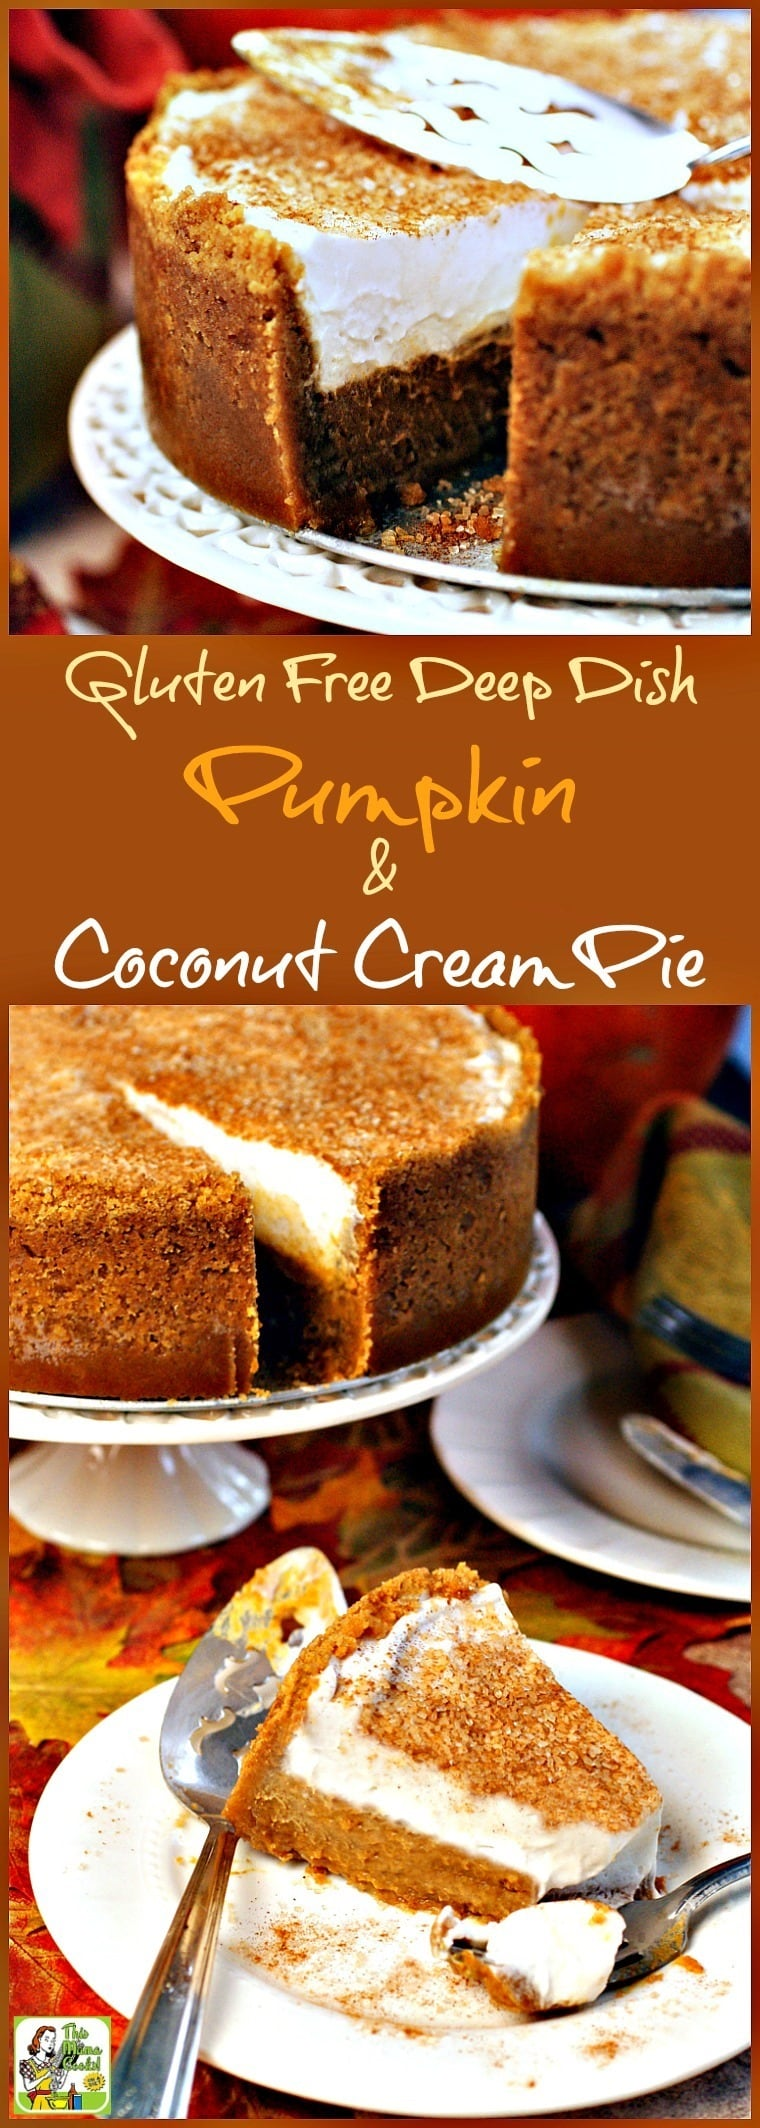 Not only is this pumpkin dessert recipe gluten free and dairy free, but it's easy to make and transport to a potluck party, too! Click here to get the recipe for Gluten Free Deep Dish Pumpkin & Coconut Cream Pie. #pumpkin #pie #dessert #glutenfree #thanksgiving #coconut #pumpkinpie #recipe #easy #recipeoftheday #healthyrecipes #easyrecipes #pumpkindessert #pumpkinrecipe #halloween